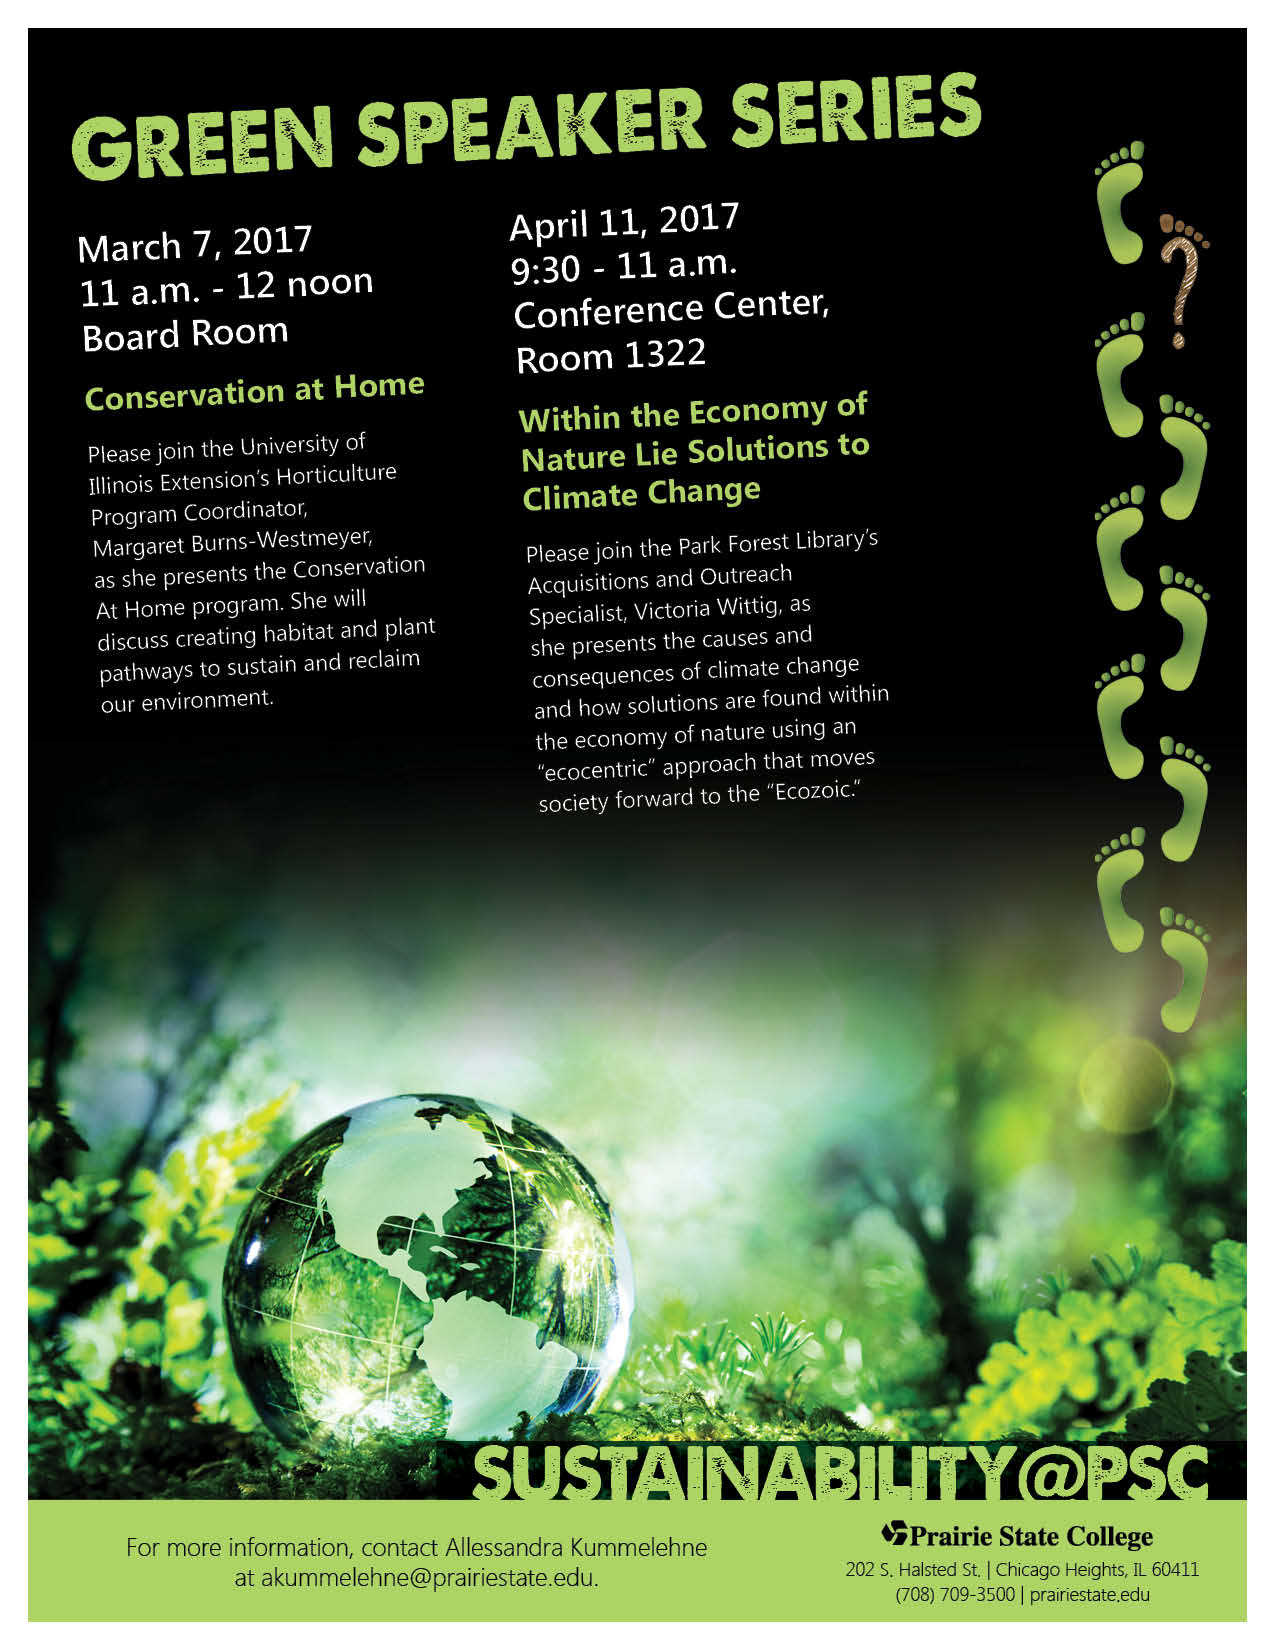 Green Speaker Series: Within the Economy of Nature Lie Solutions to Climate Change